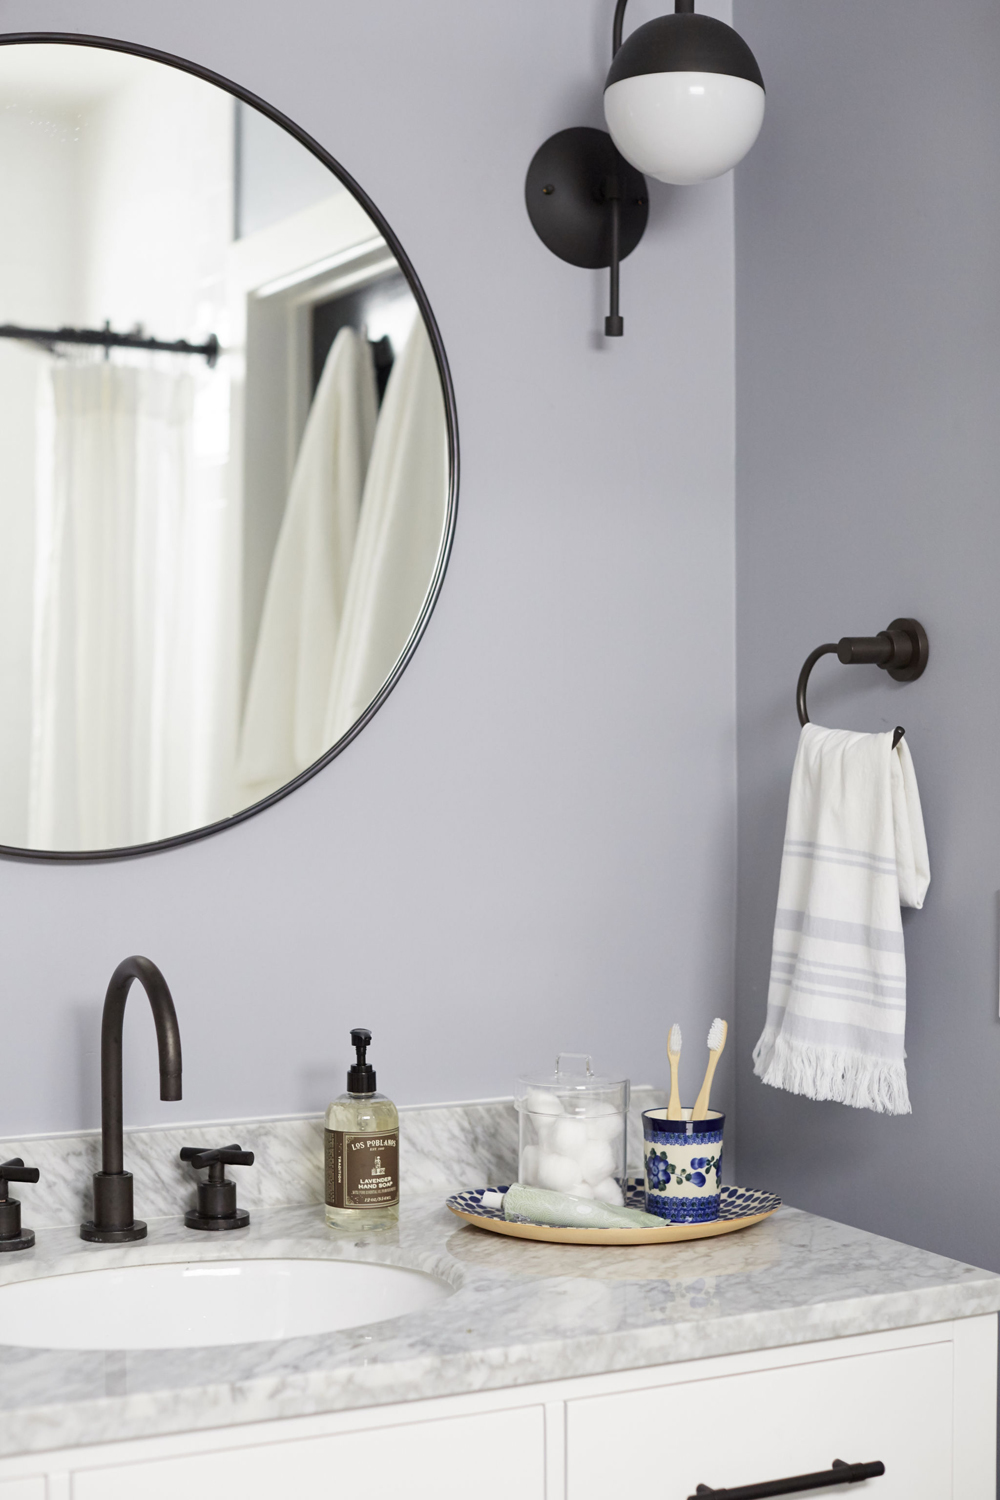 Ginny_Macdonald_Bathroom_Design_Modern-Traditional_Full-Service_03_1000px